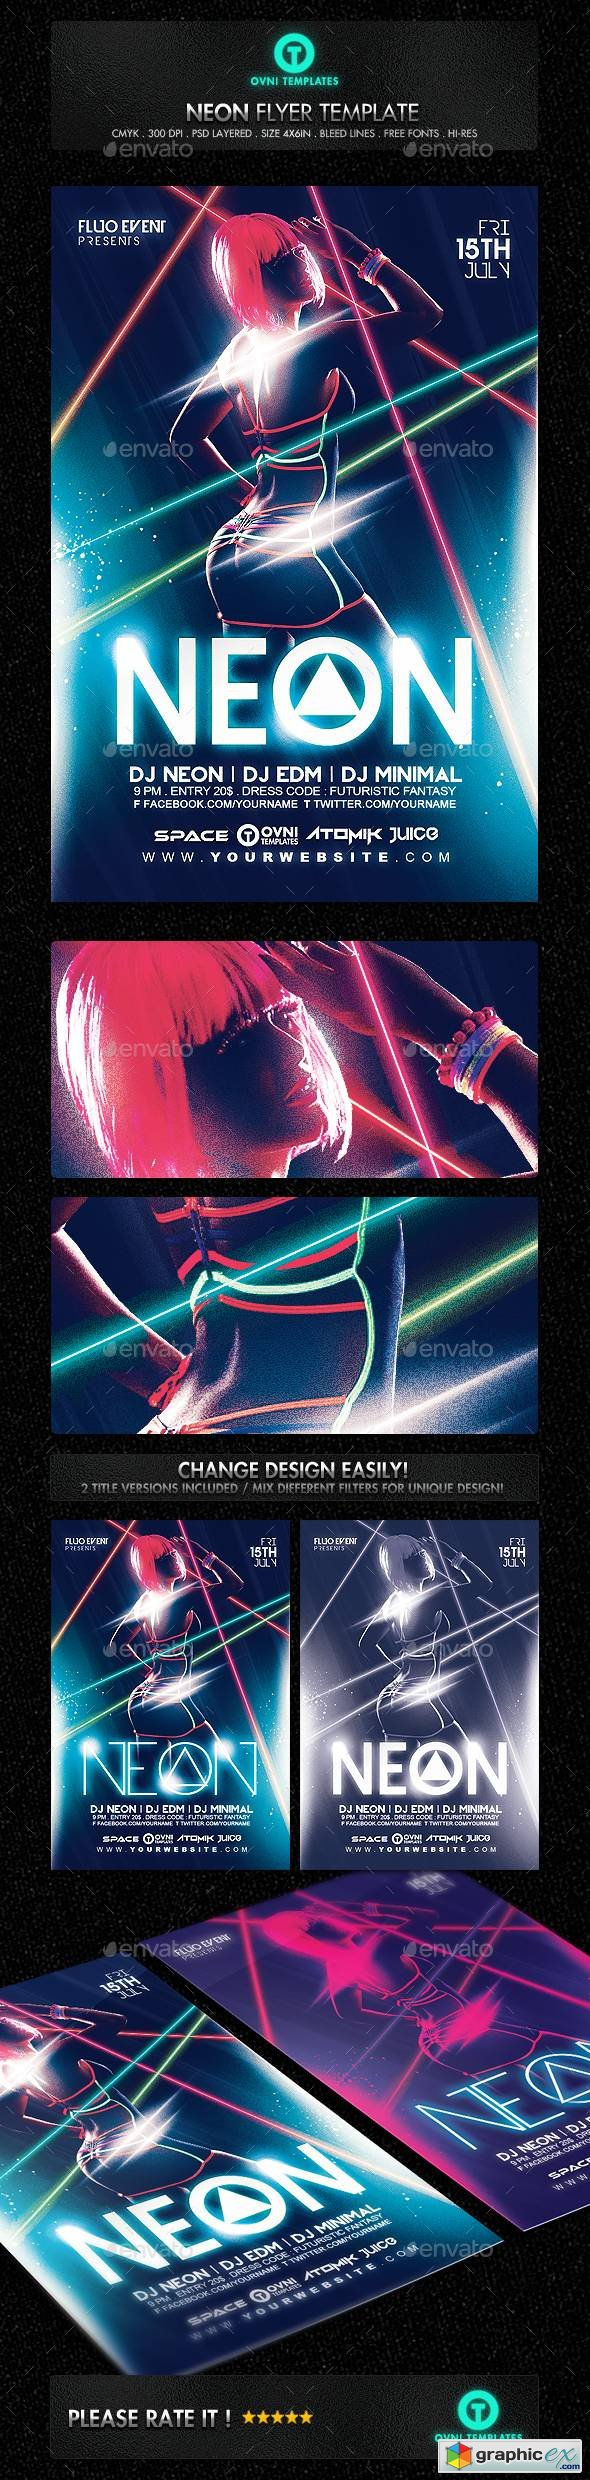 Neon Laser Fluo Light Sexy Flyer Template